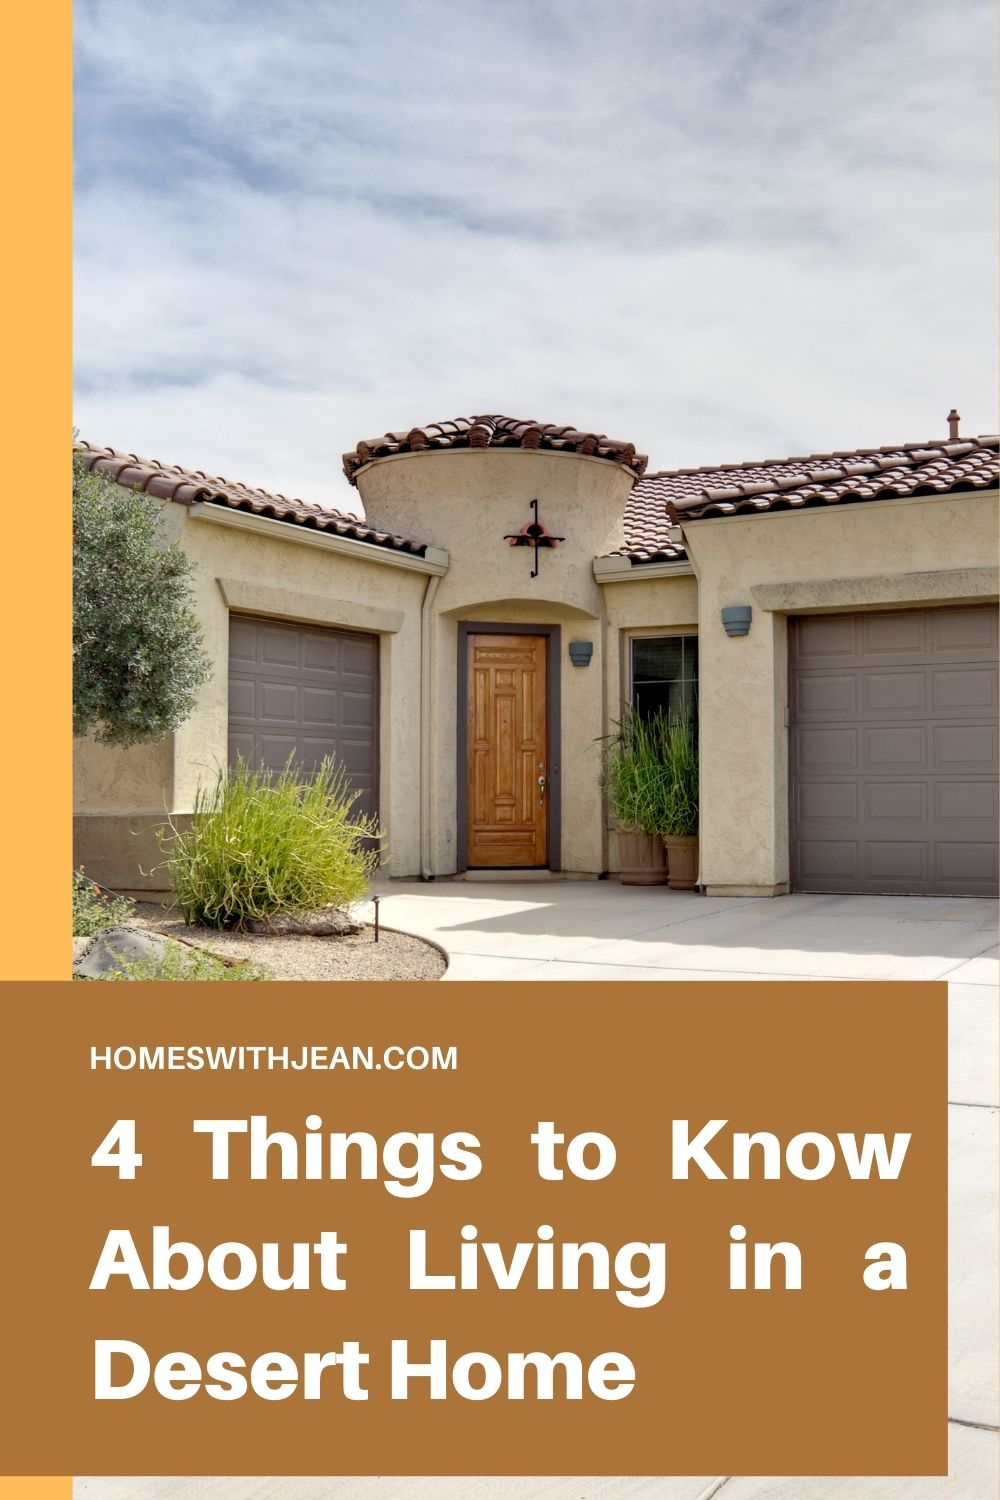 4 Things to Know About Living in a Desert Home